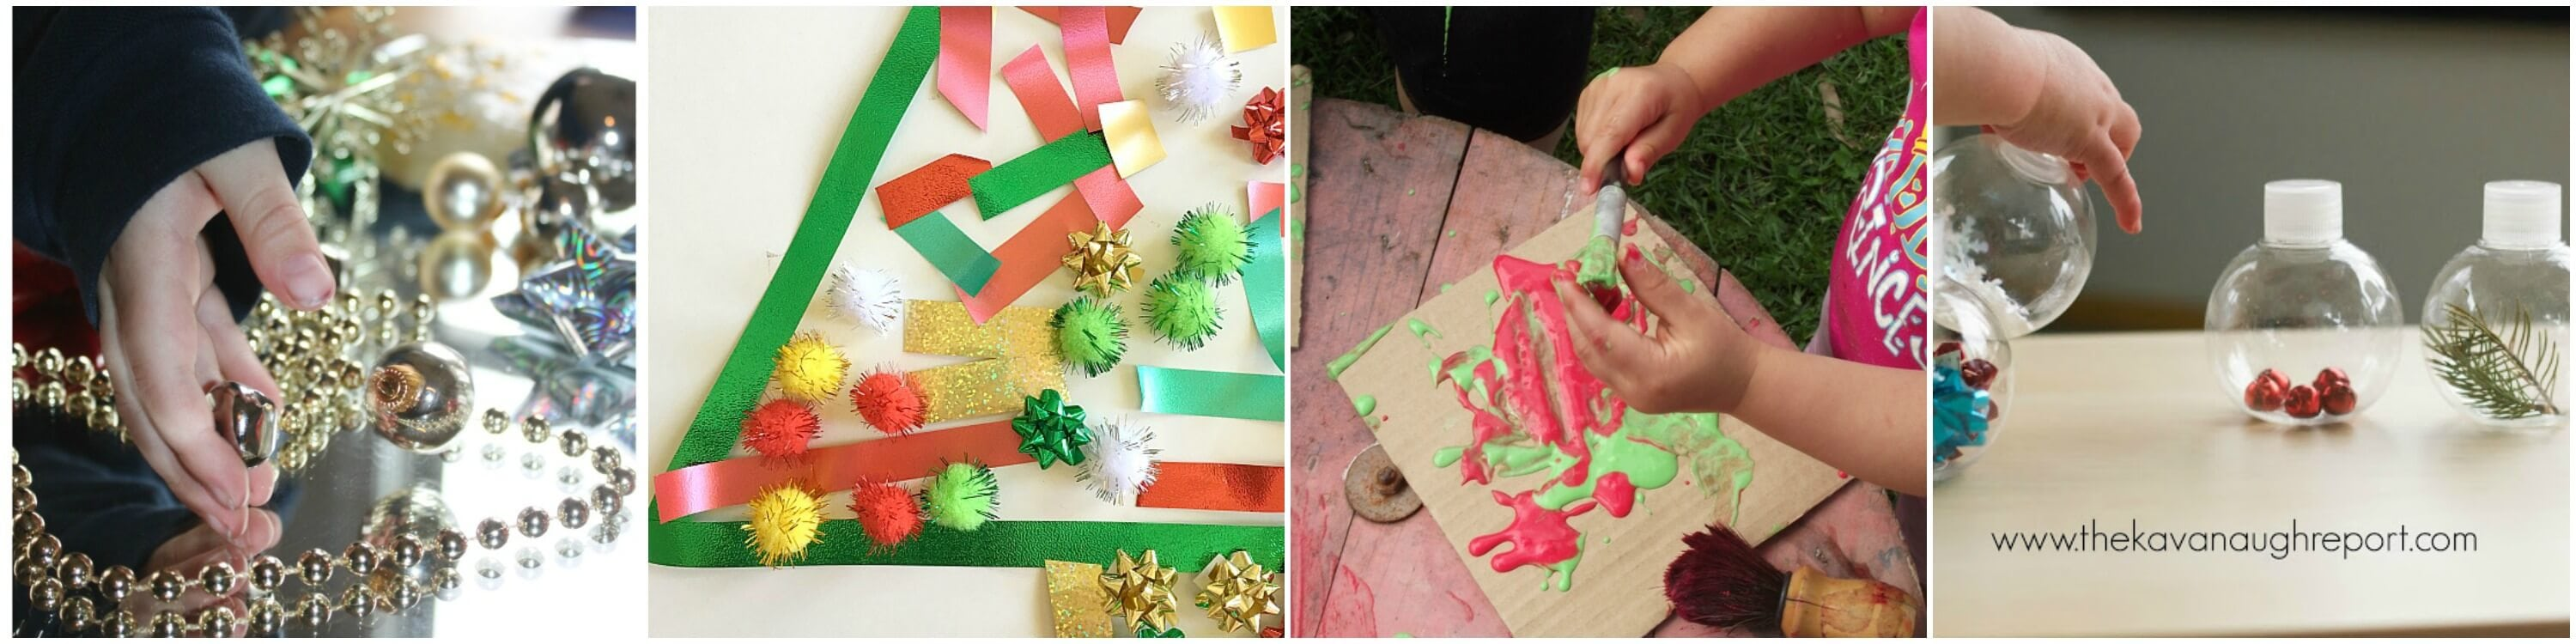 Ditch the stress and keep the end of year planning simple and playful with this huge collection of easy Christmas activities and gifts for children to enjoy. Perfect for time poor early childhood educators, teachers and parents!